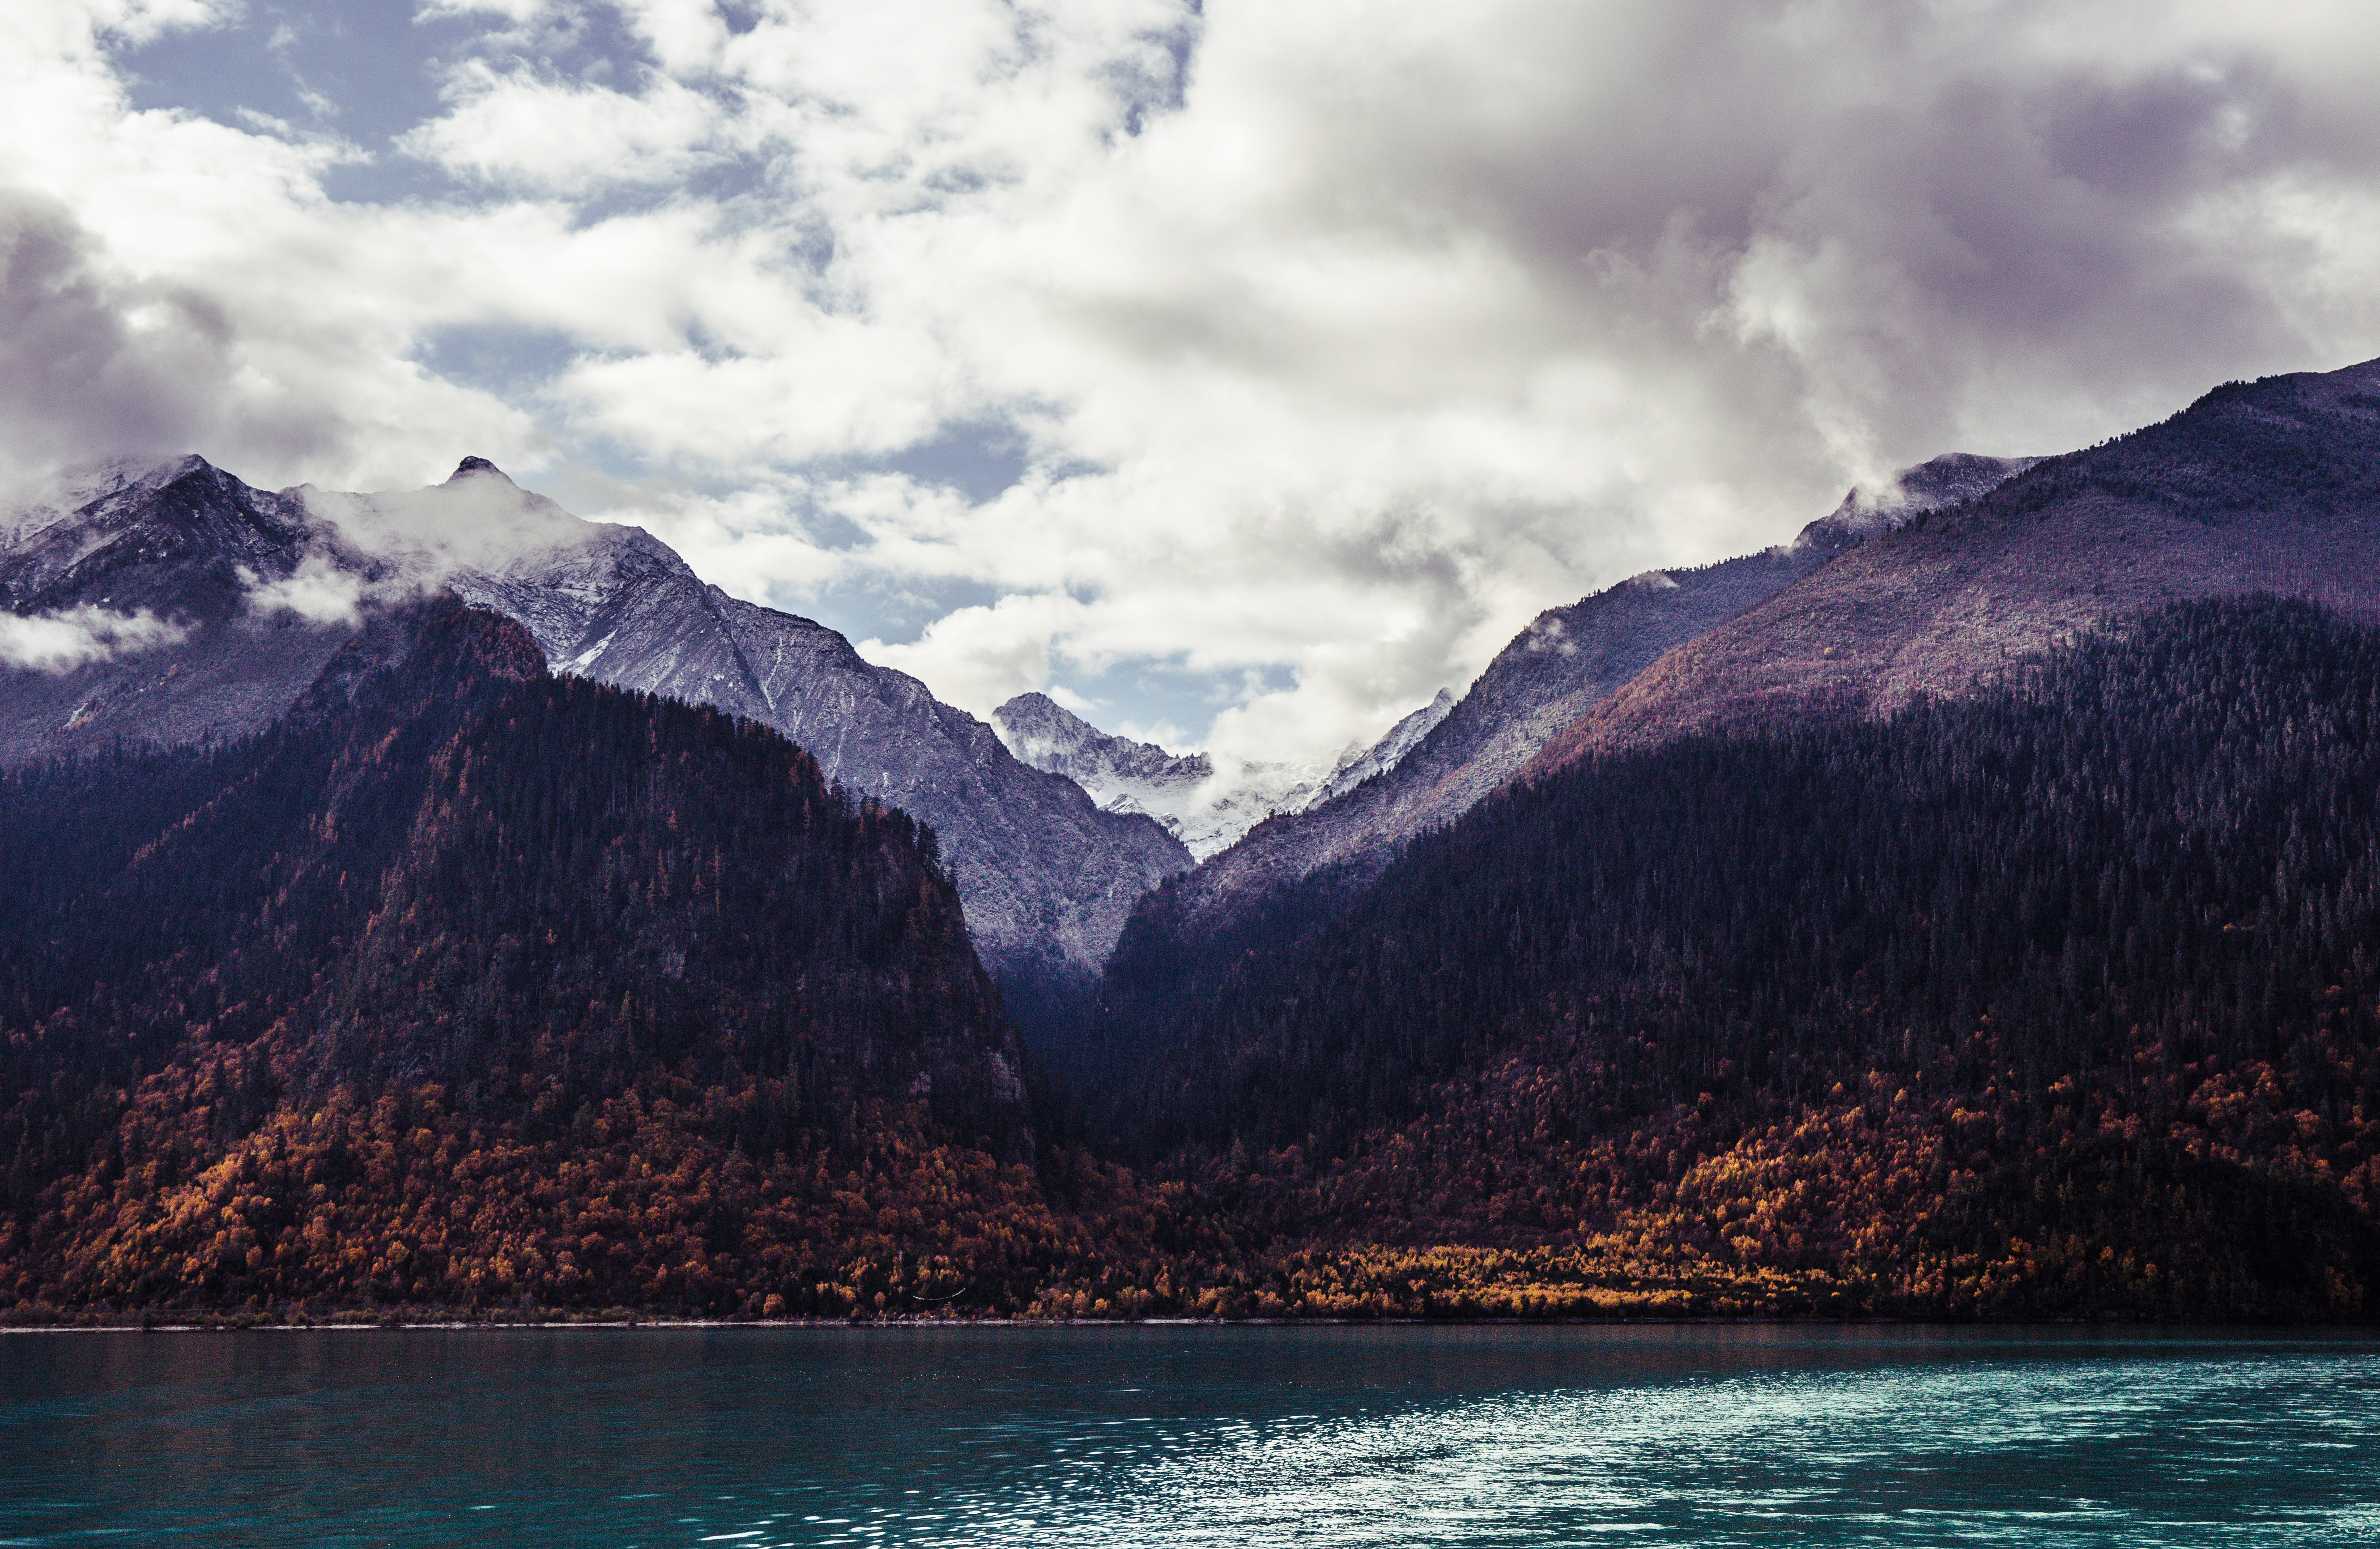 View from an azure lake on tall wooded mountains at the shore